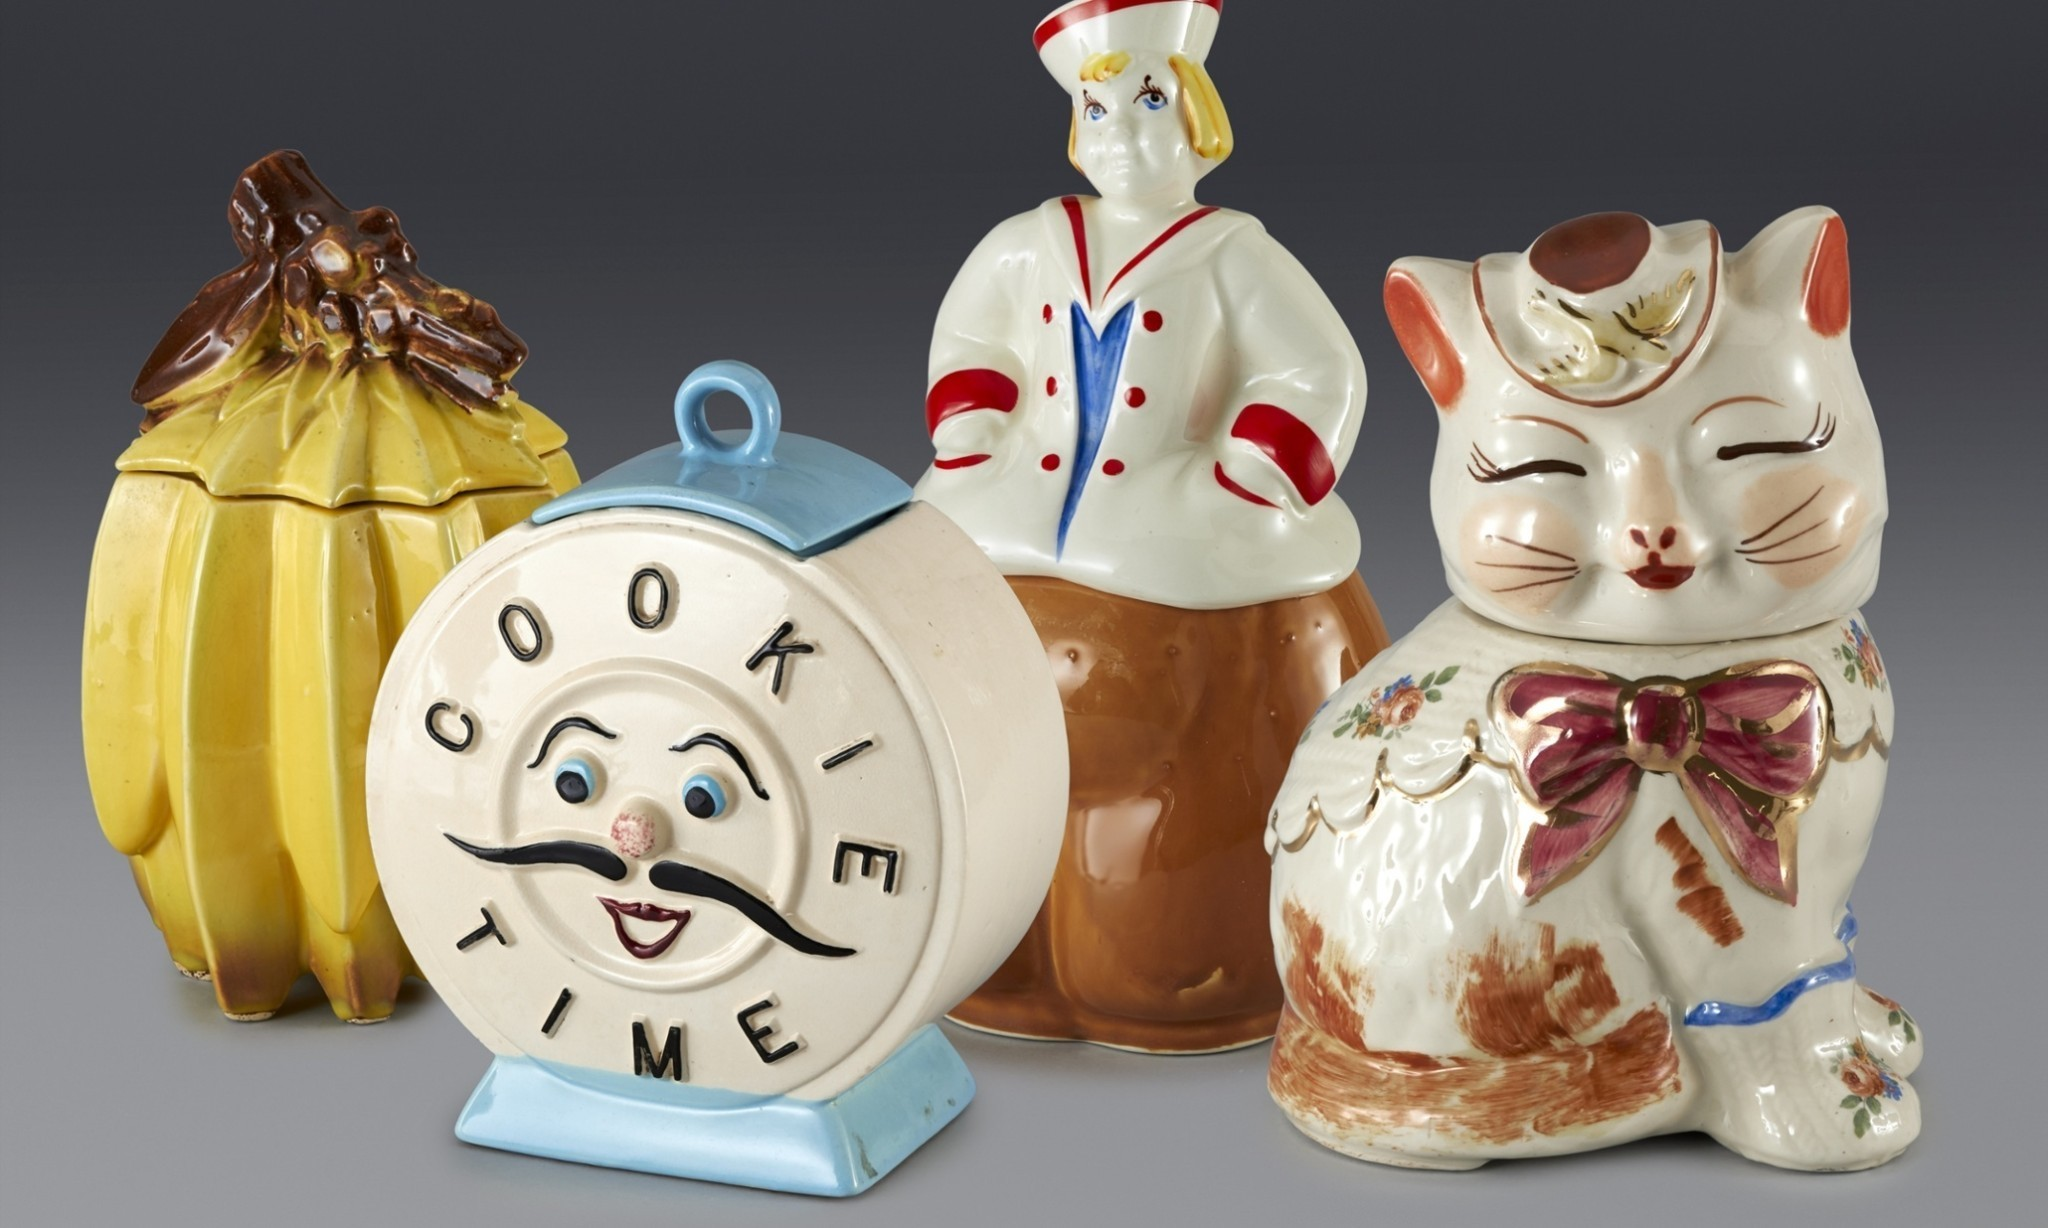 Curios and curiouser: the weird and wonderful stuff that artists collect